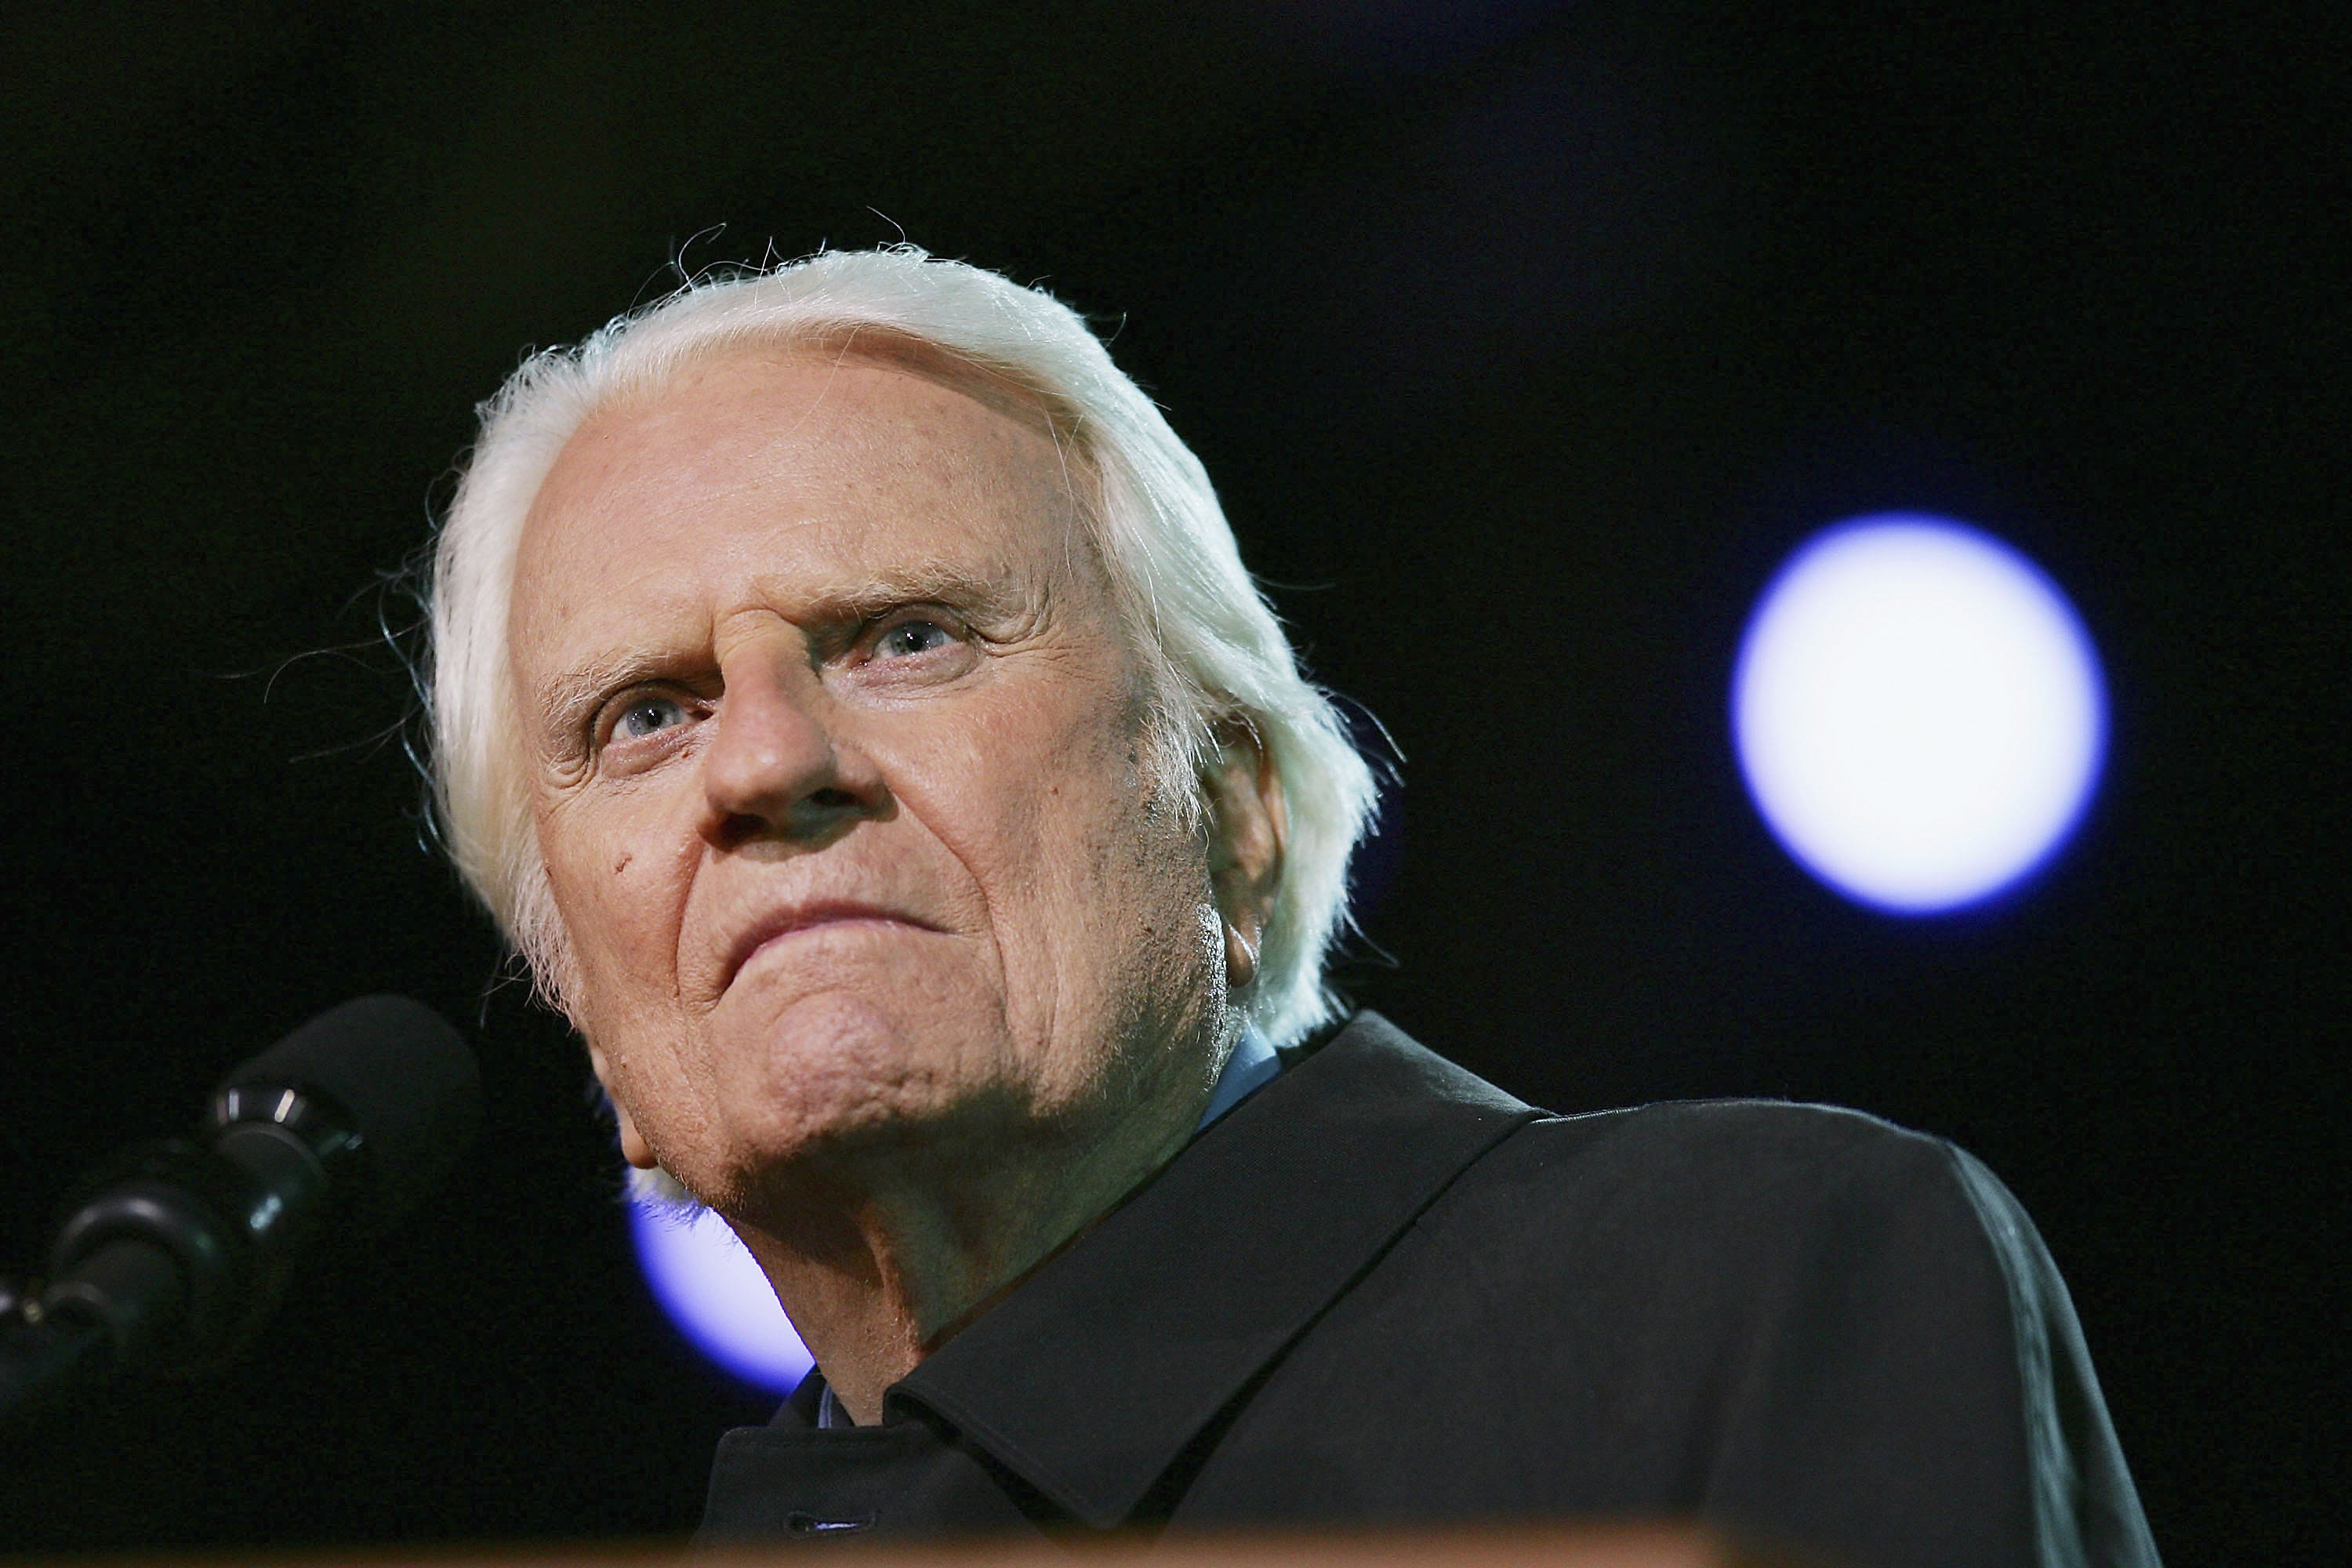 'Boy, he delivered a powerful sermon': Billy Graham wowed those who witnessed him